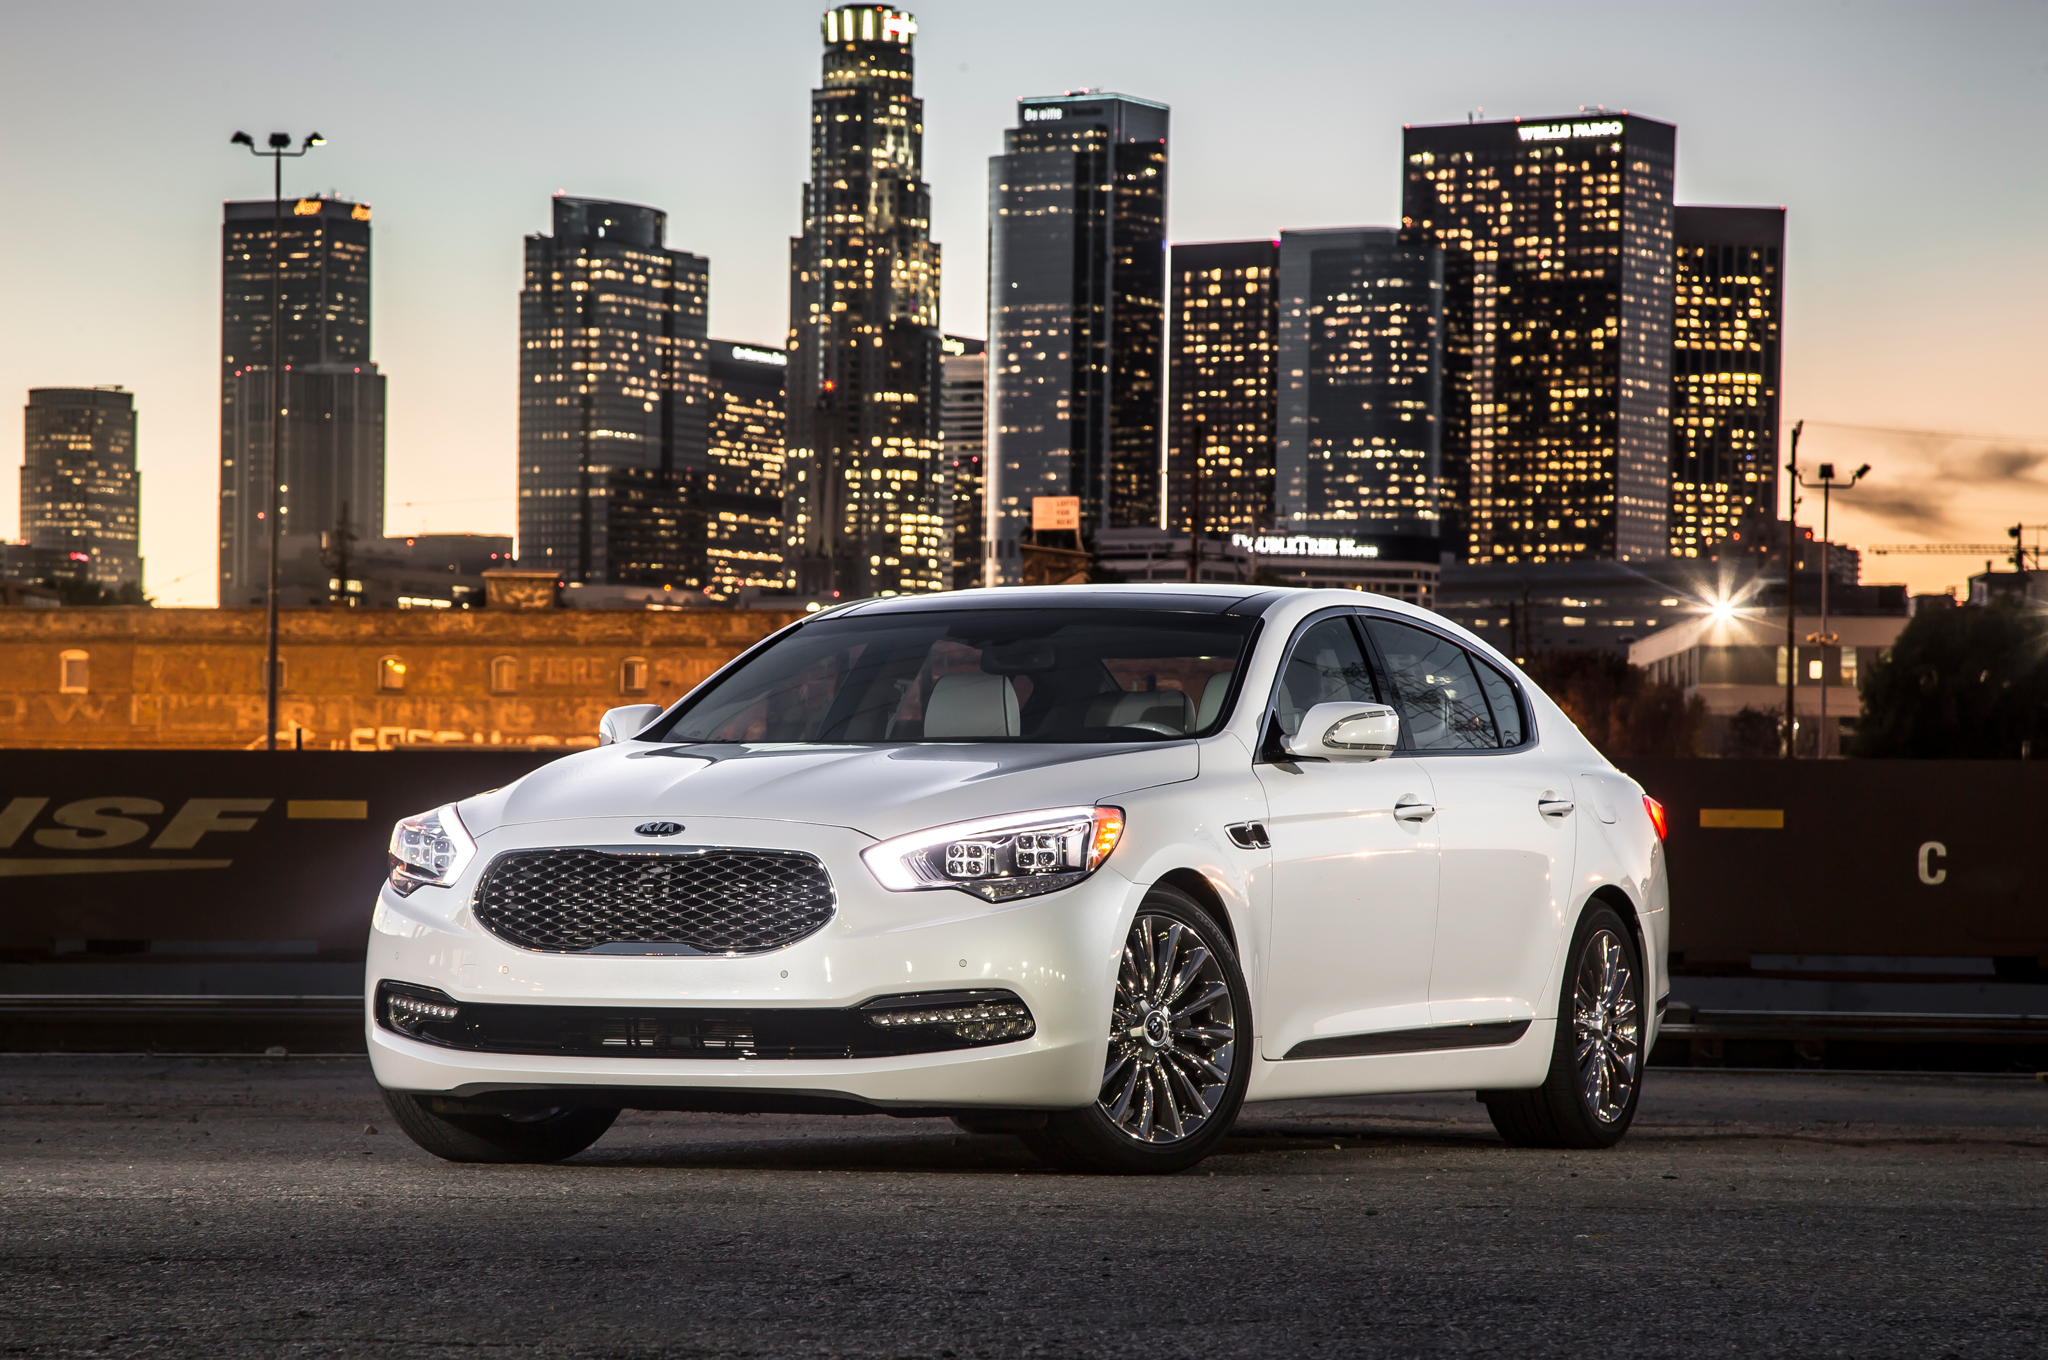 release redesign the and date car specs review first drive kia new price